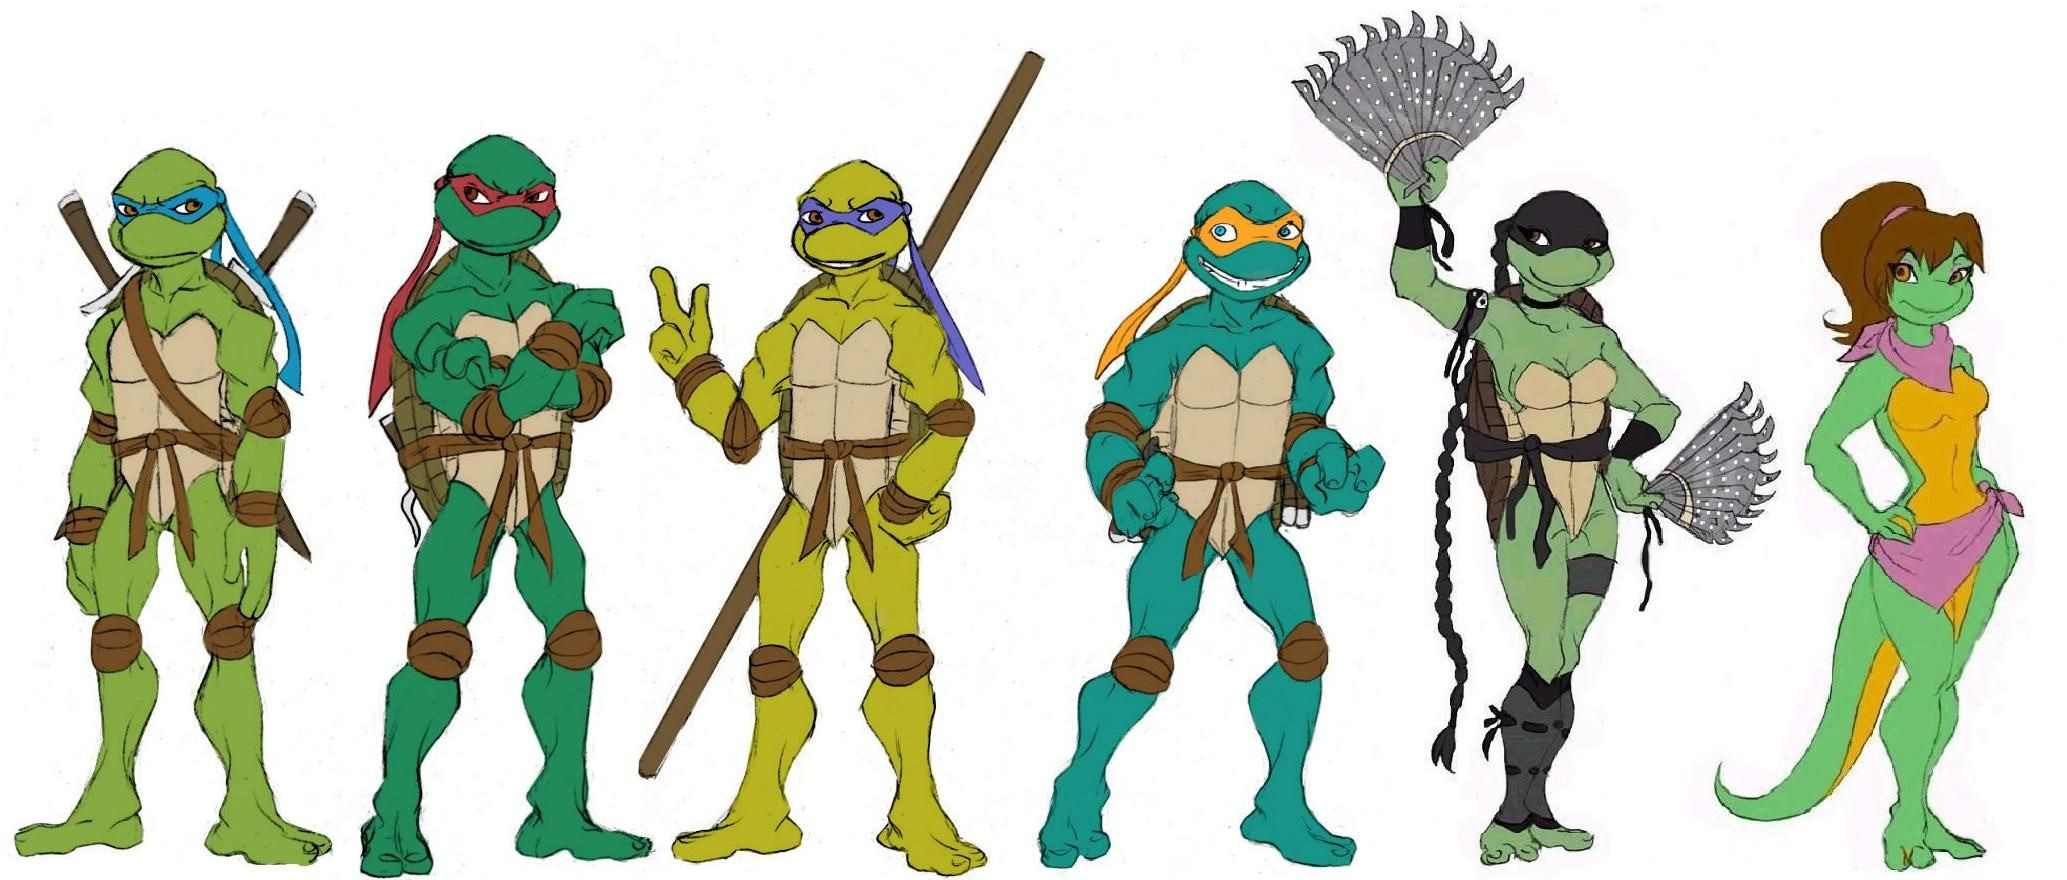 Ausmalbilder Ninja Turtles Inspirierend Female Ninja Turtle Ninja Turtles Line Up by Lily Pily Luxus Fußball Sammlung